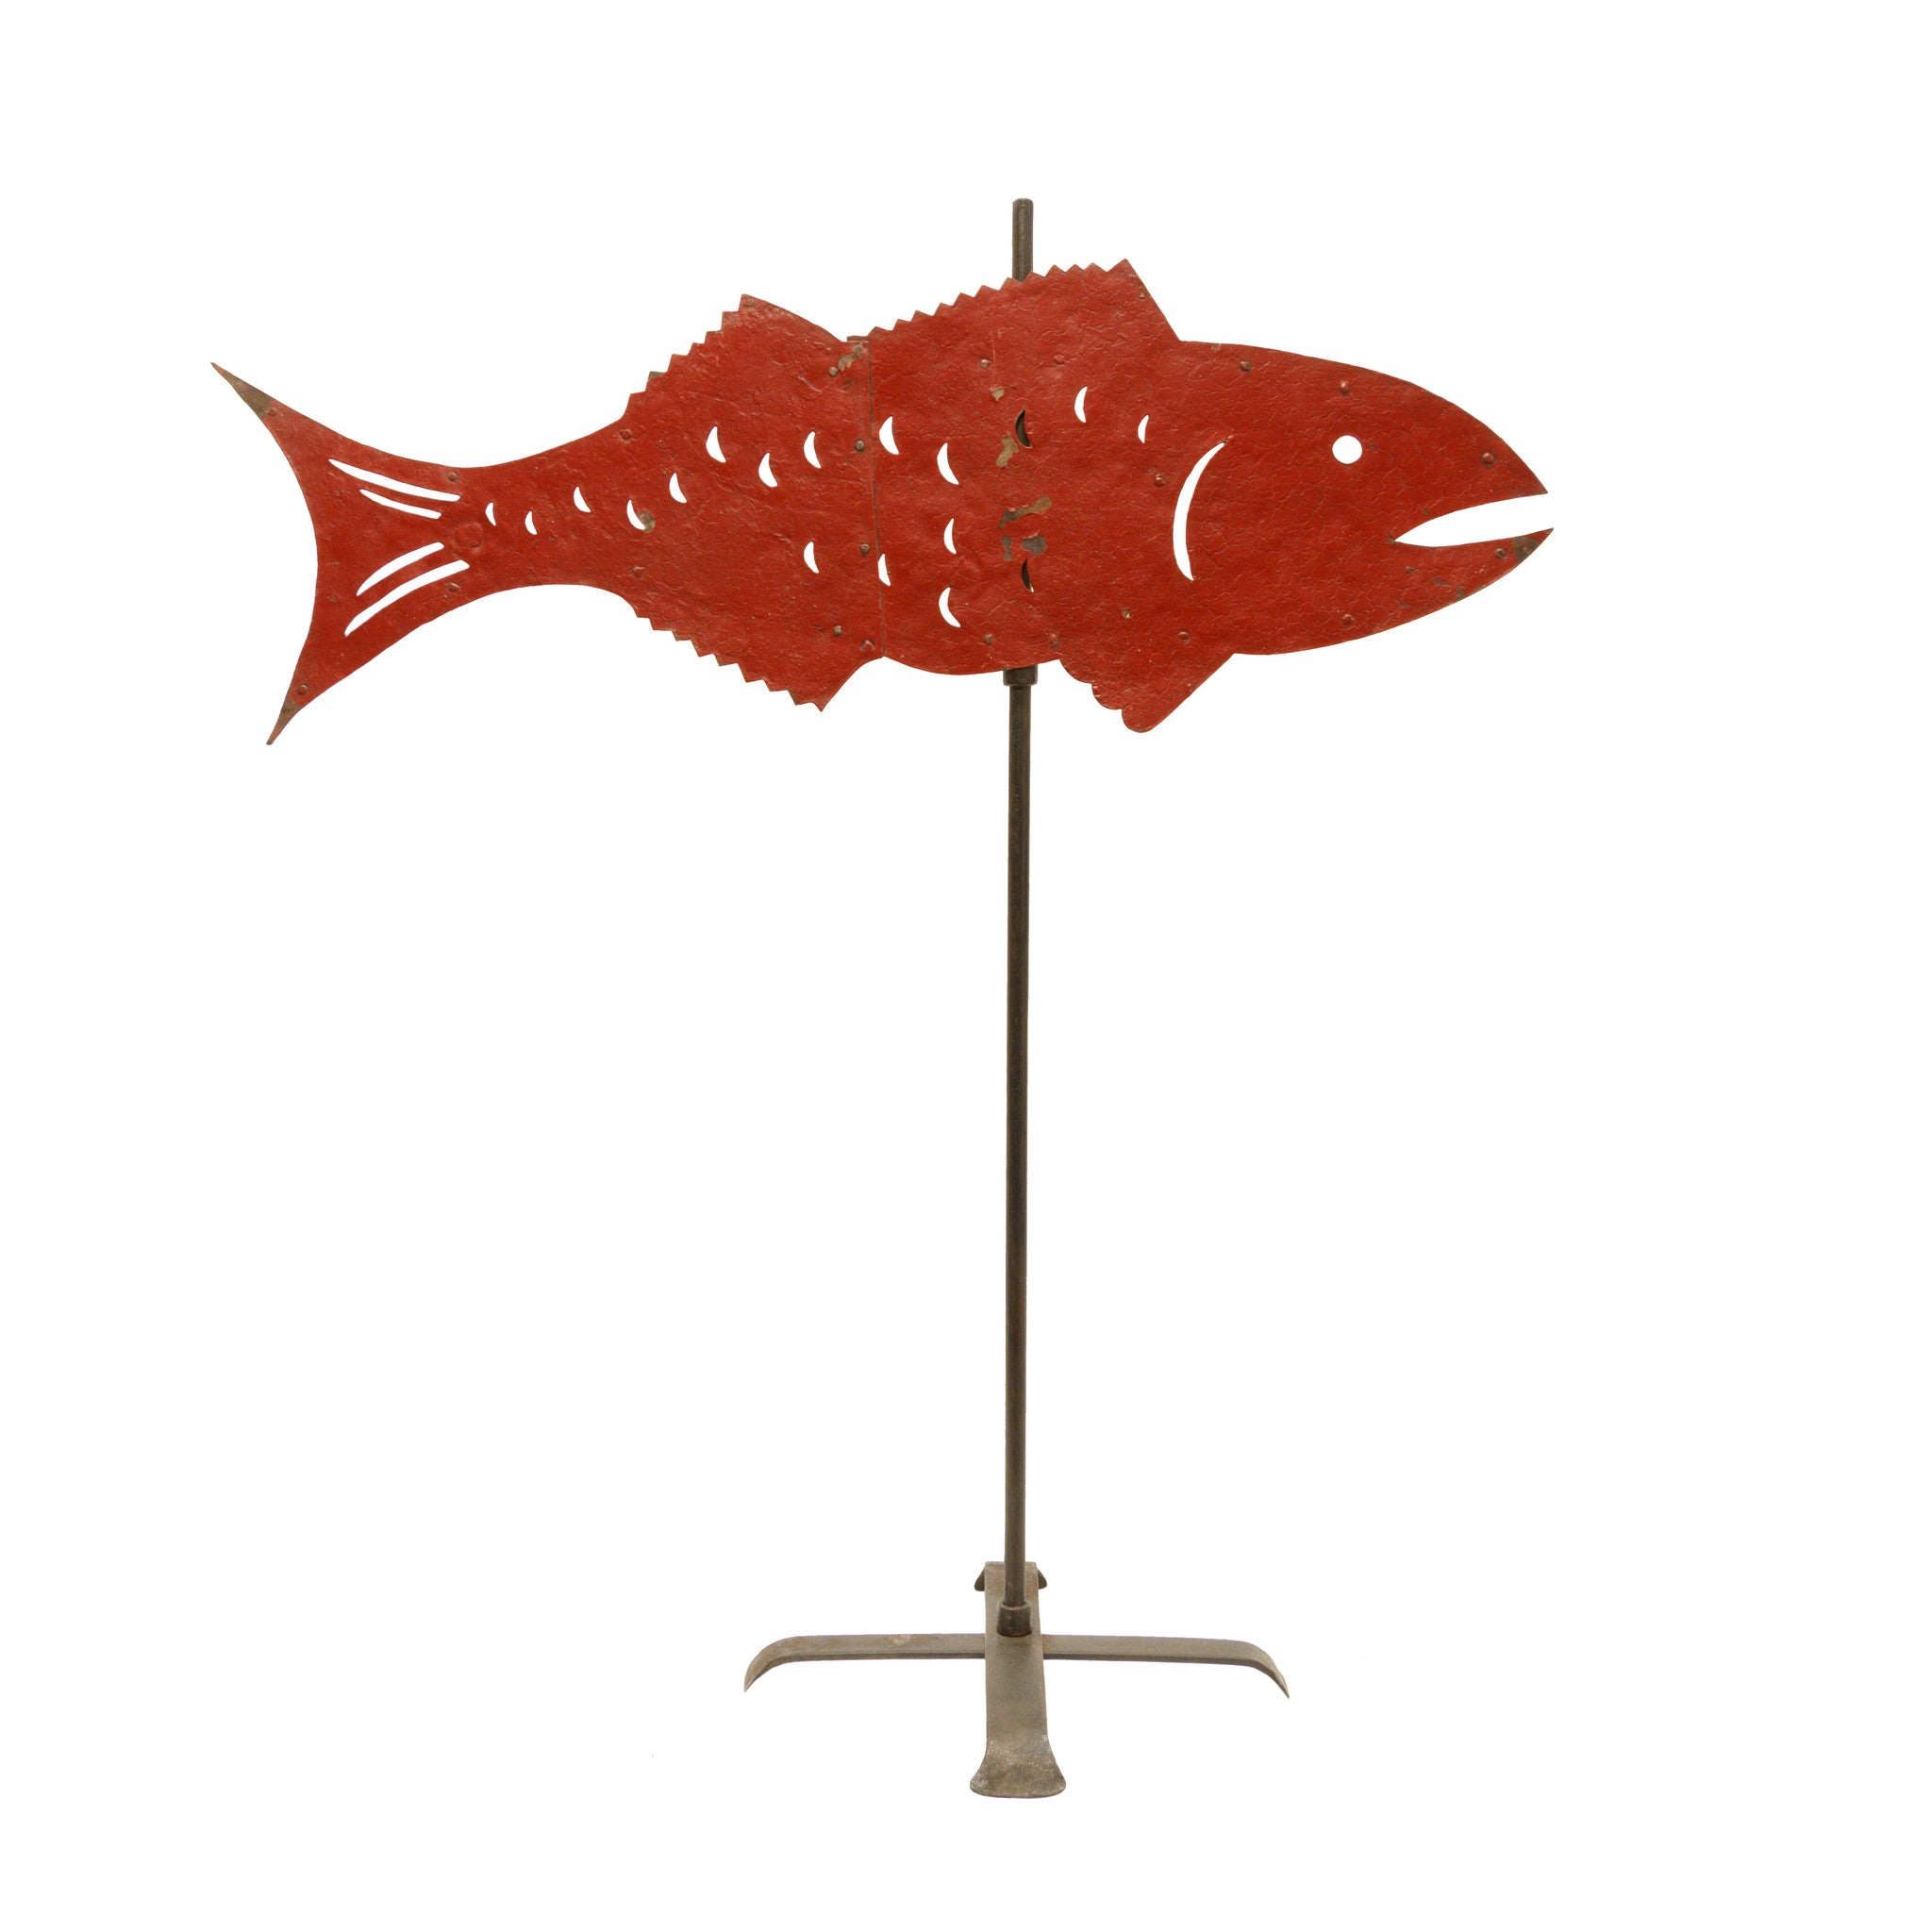 Fish Weather Vane fish, folk art, weather vanes